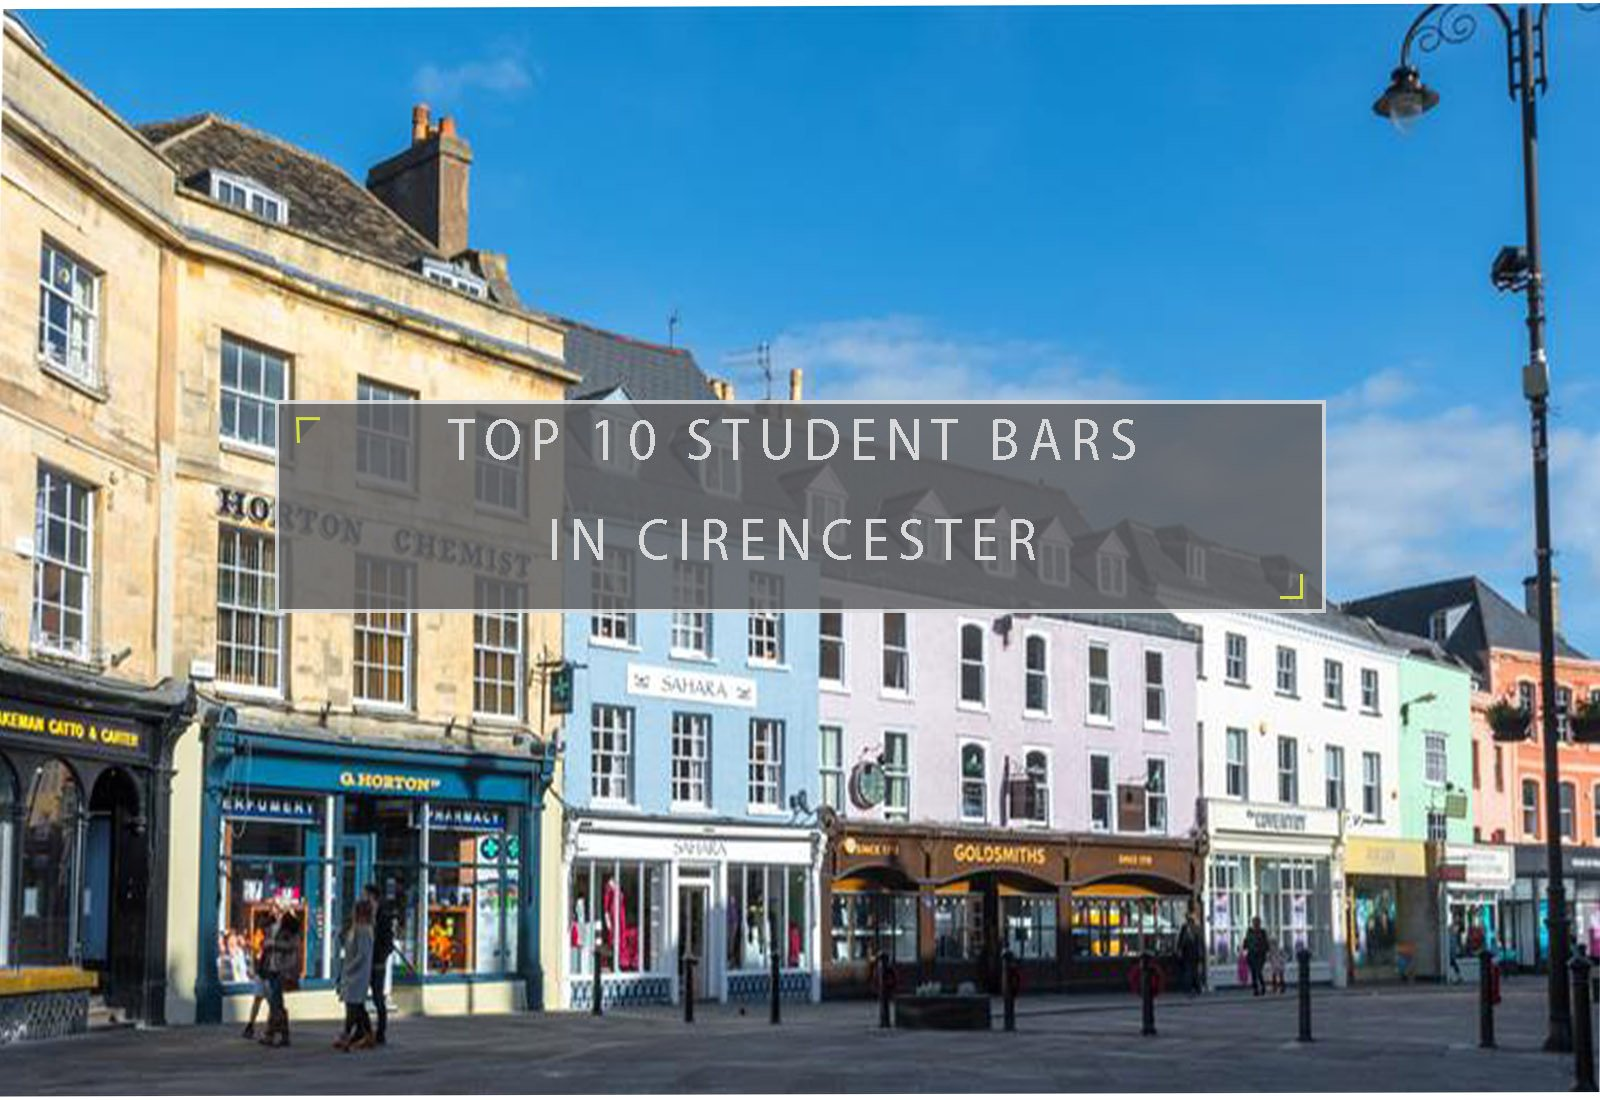 Student bars in Cirencester